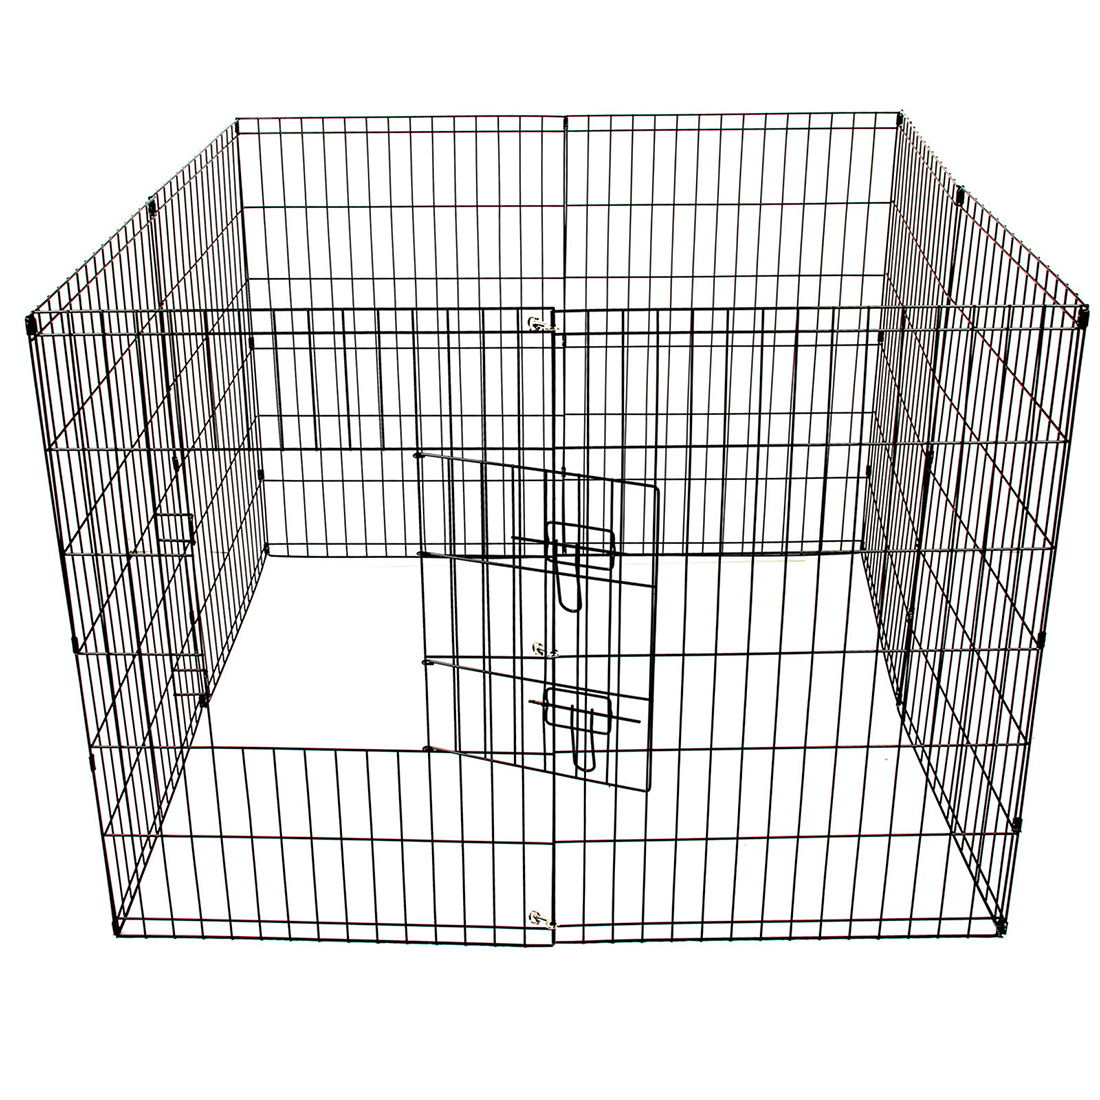 8 panel metal pet dog animal exercise playpen fence for Dog fence enclosure